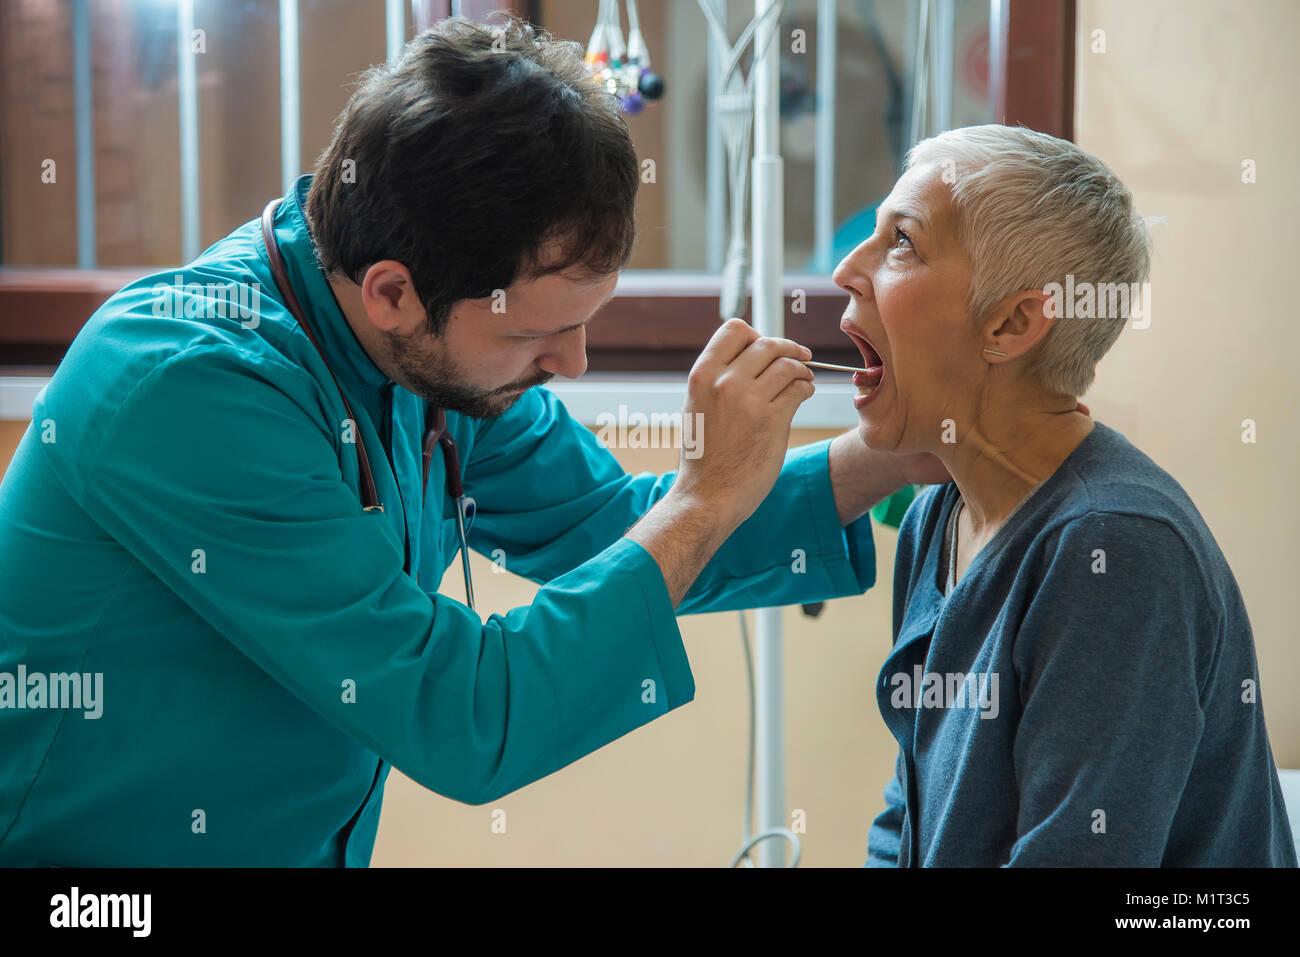 Laryngitis or tonsil problem a senior woman is checking with her doctor - Stock Image